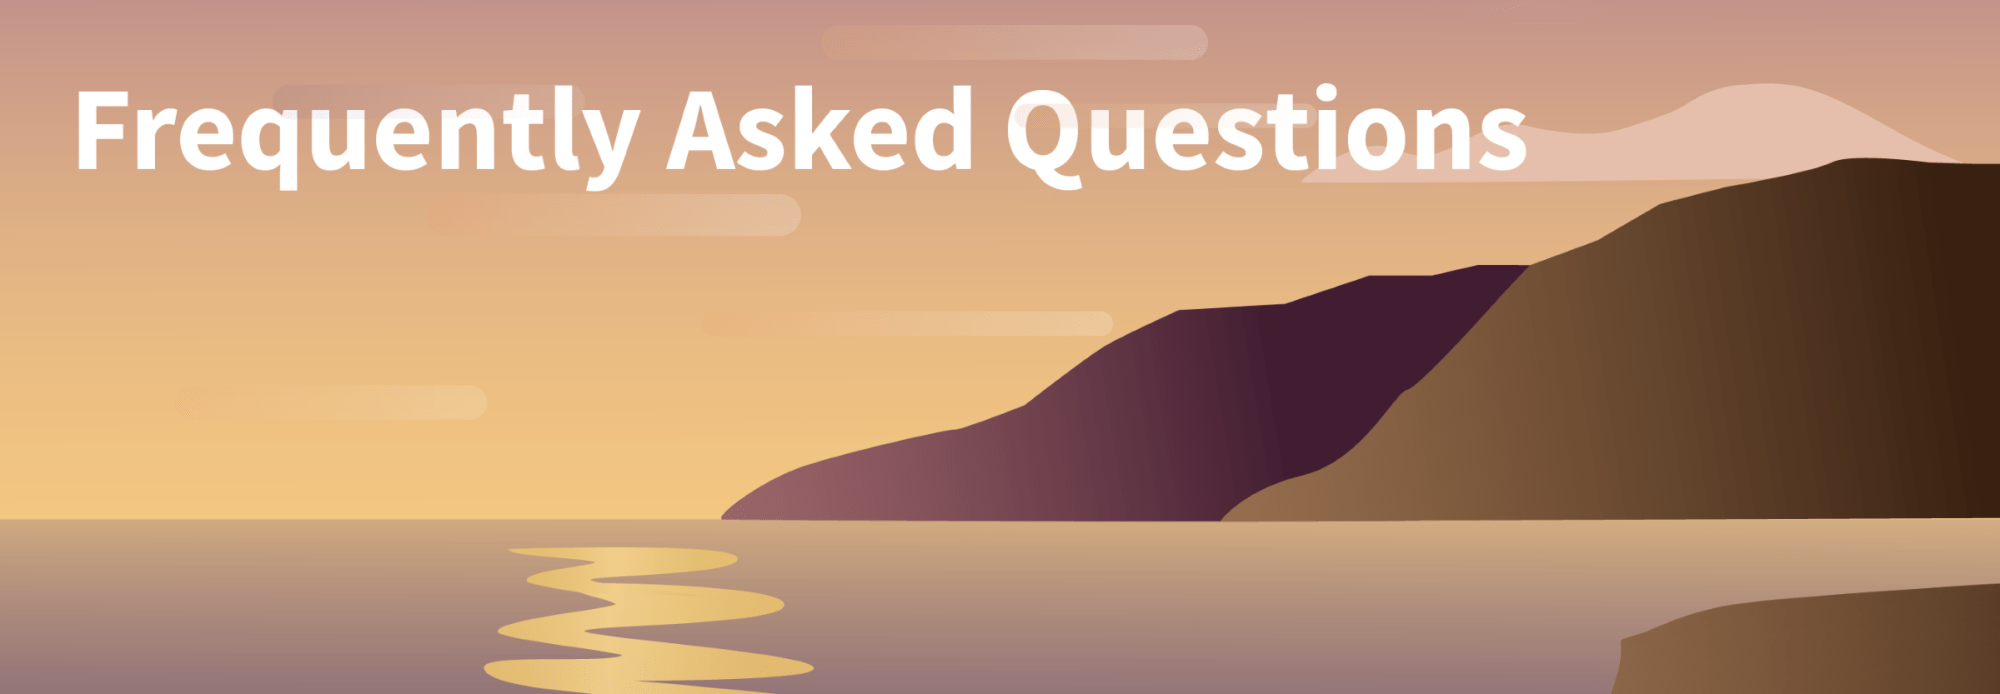 hight resolution of Frequently Asked Questions - Mustang Success Center - Cal Poly